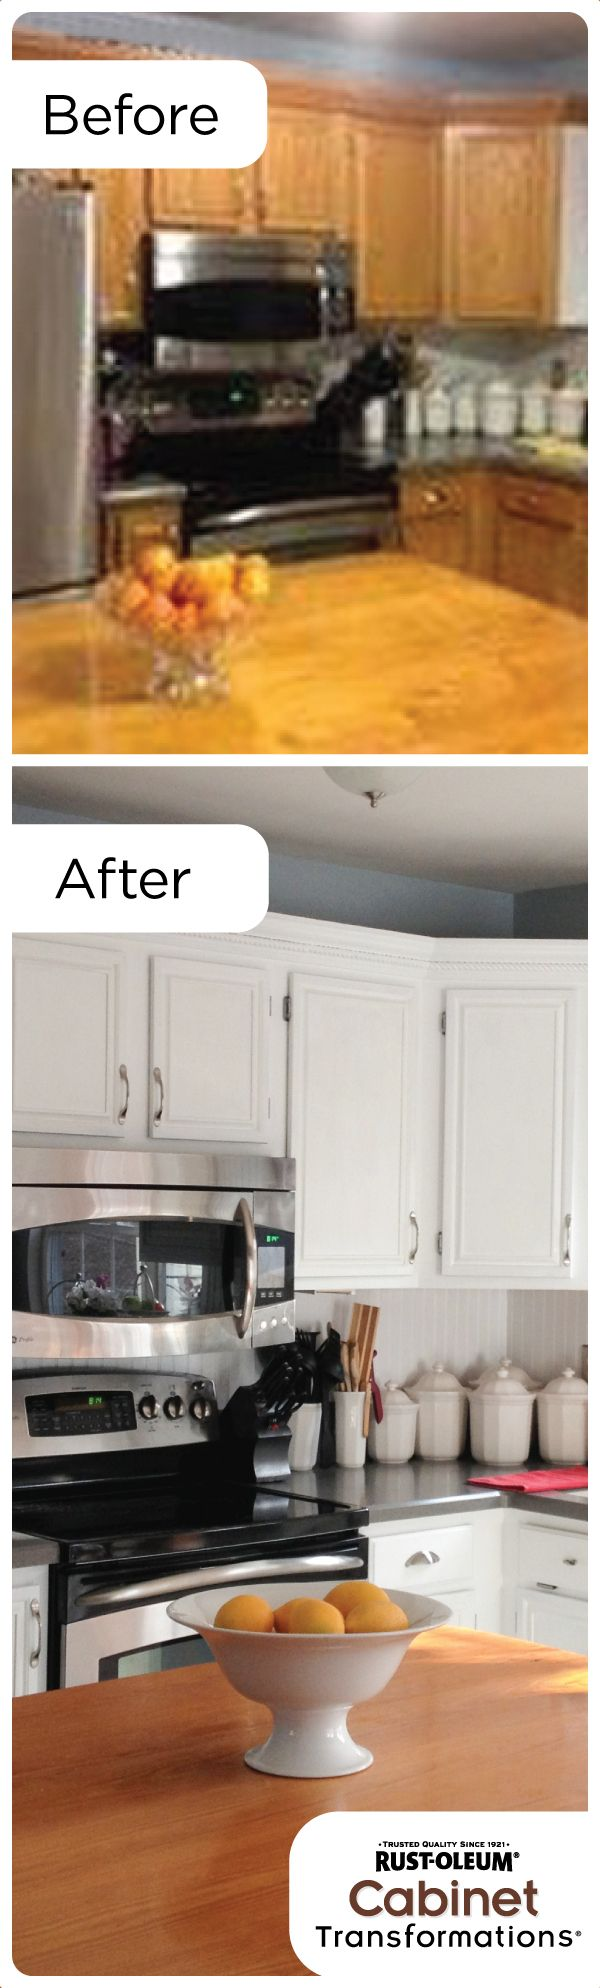 279 best kitchen projects images on pinterest product catalog cabinet transformations submitted by janet l